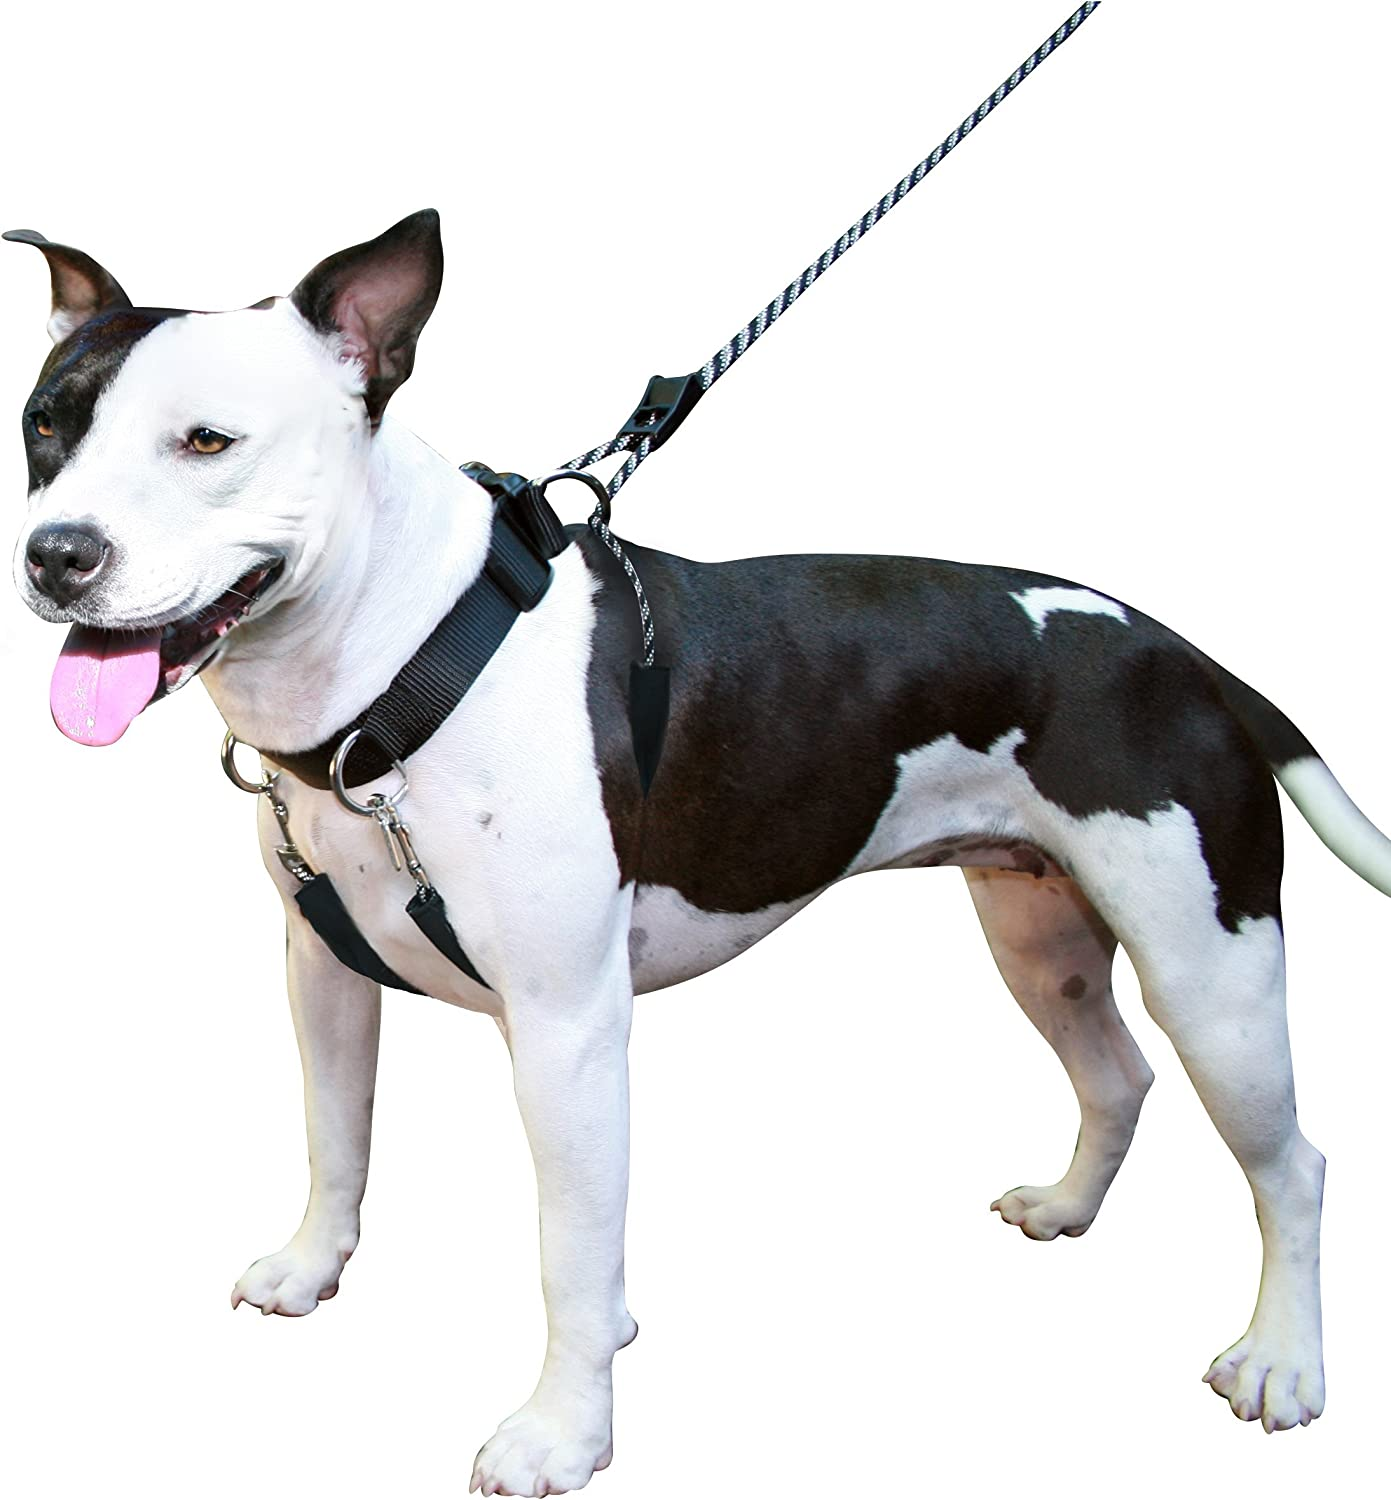 Dog Halter Easy Step-in Vest Collar Halter for Control Non-Pull No-Choke Humane Pet Training Halter Harness Detachable Restraints /& Sherpa Sleeves Patented Dog Pull Control Technology by Sporn